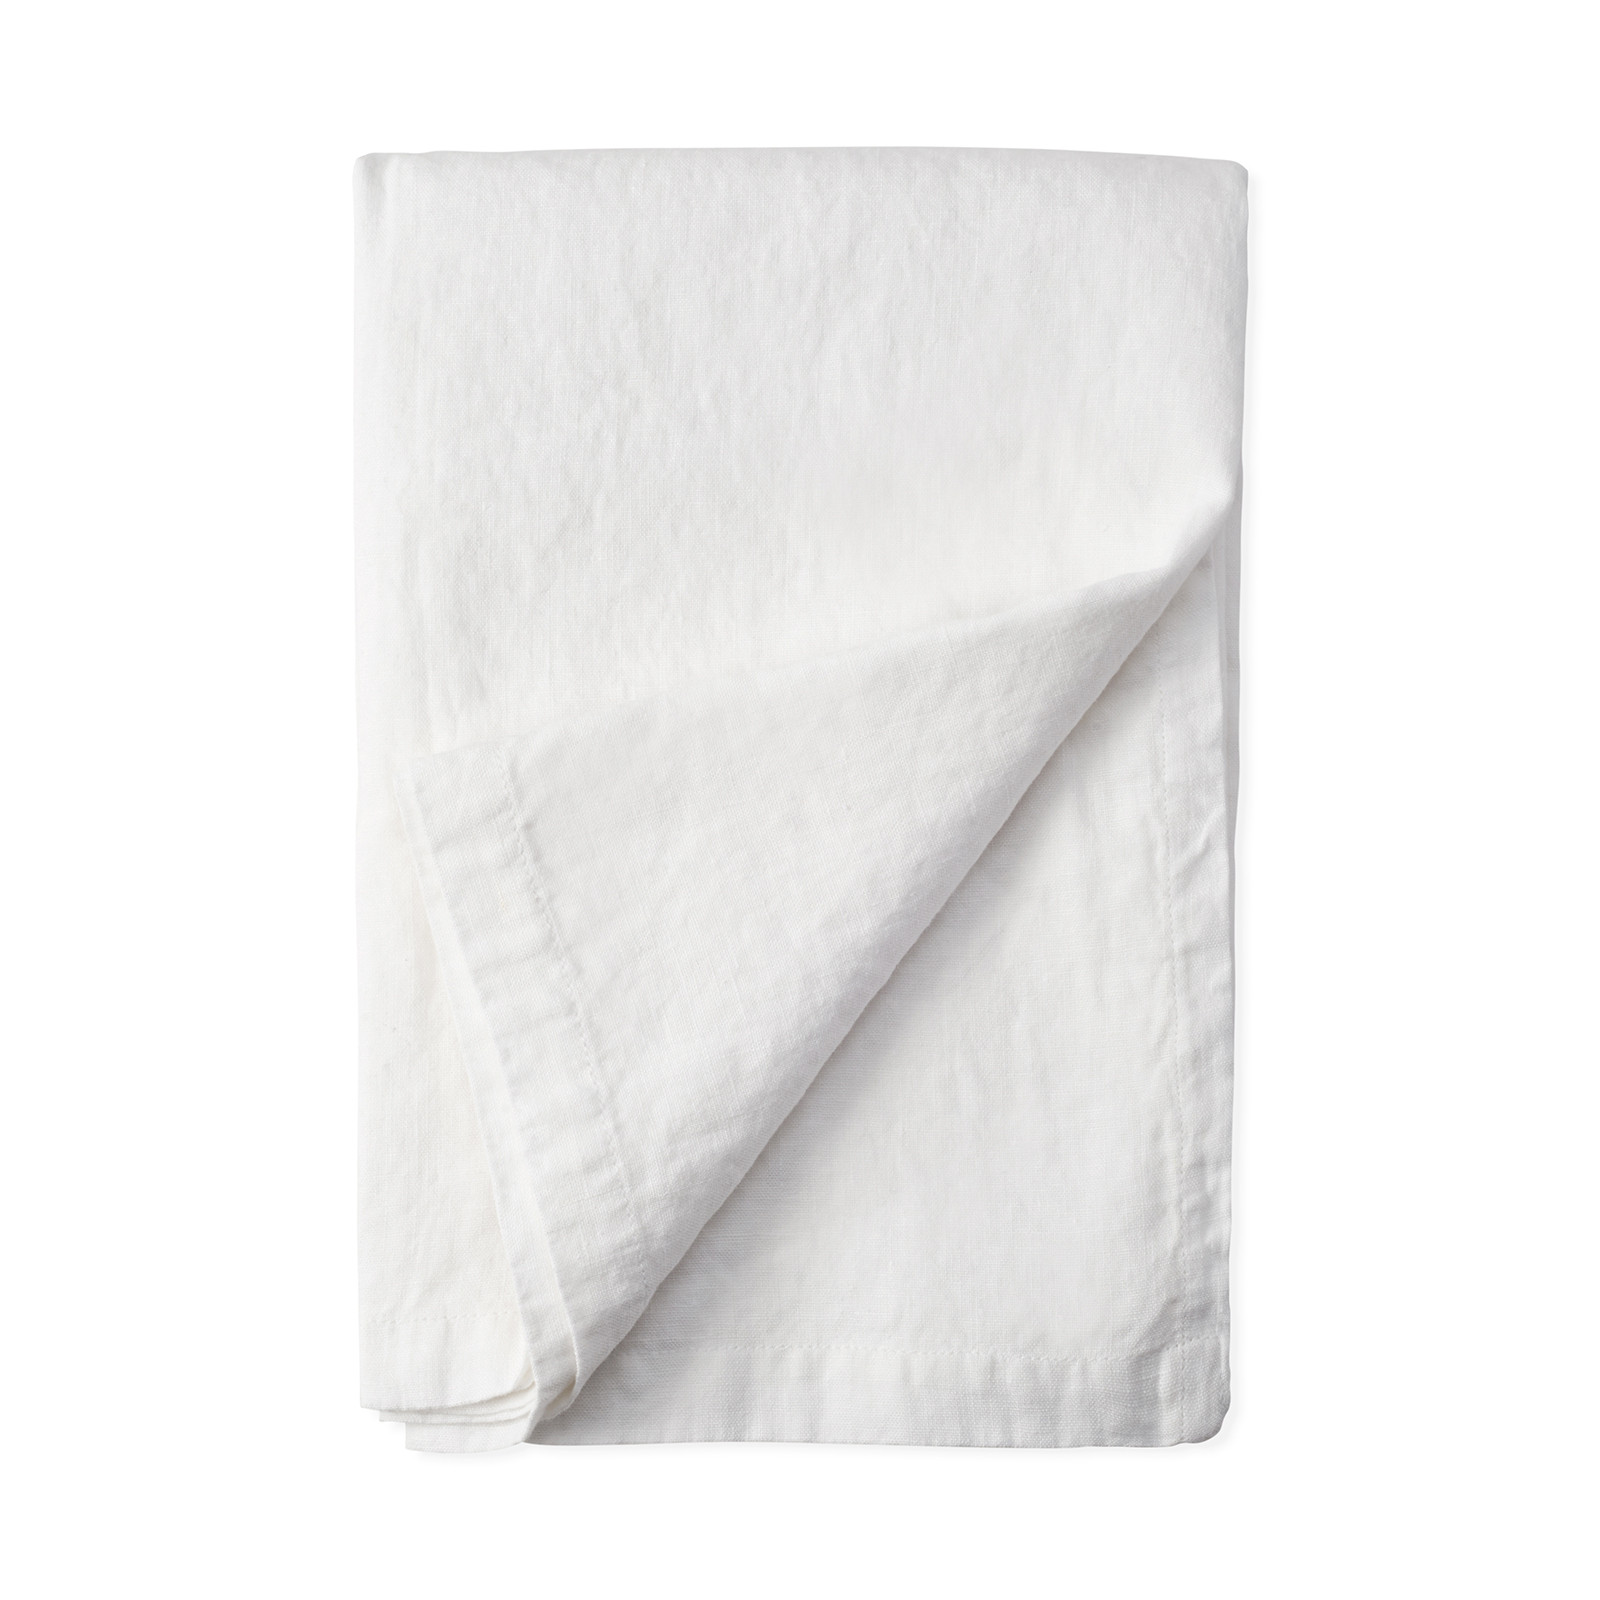 Elegant White Linen Tablecloth by Lost in Linen white linen table cloths